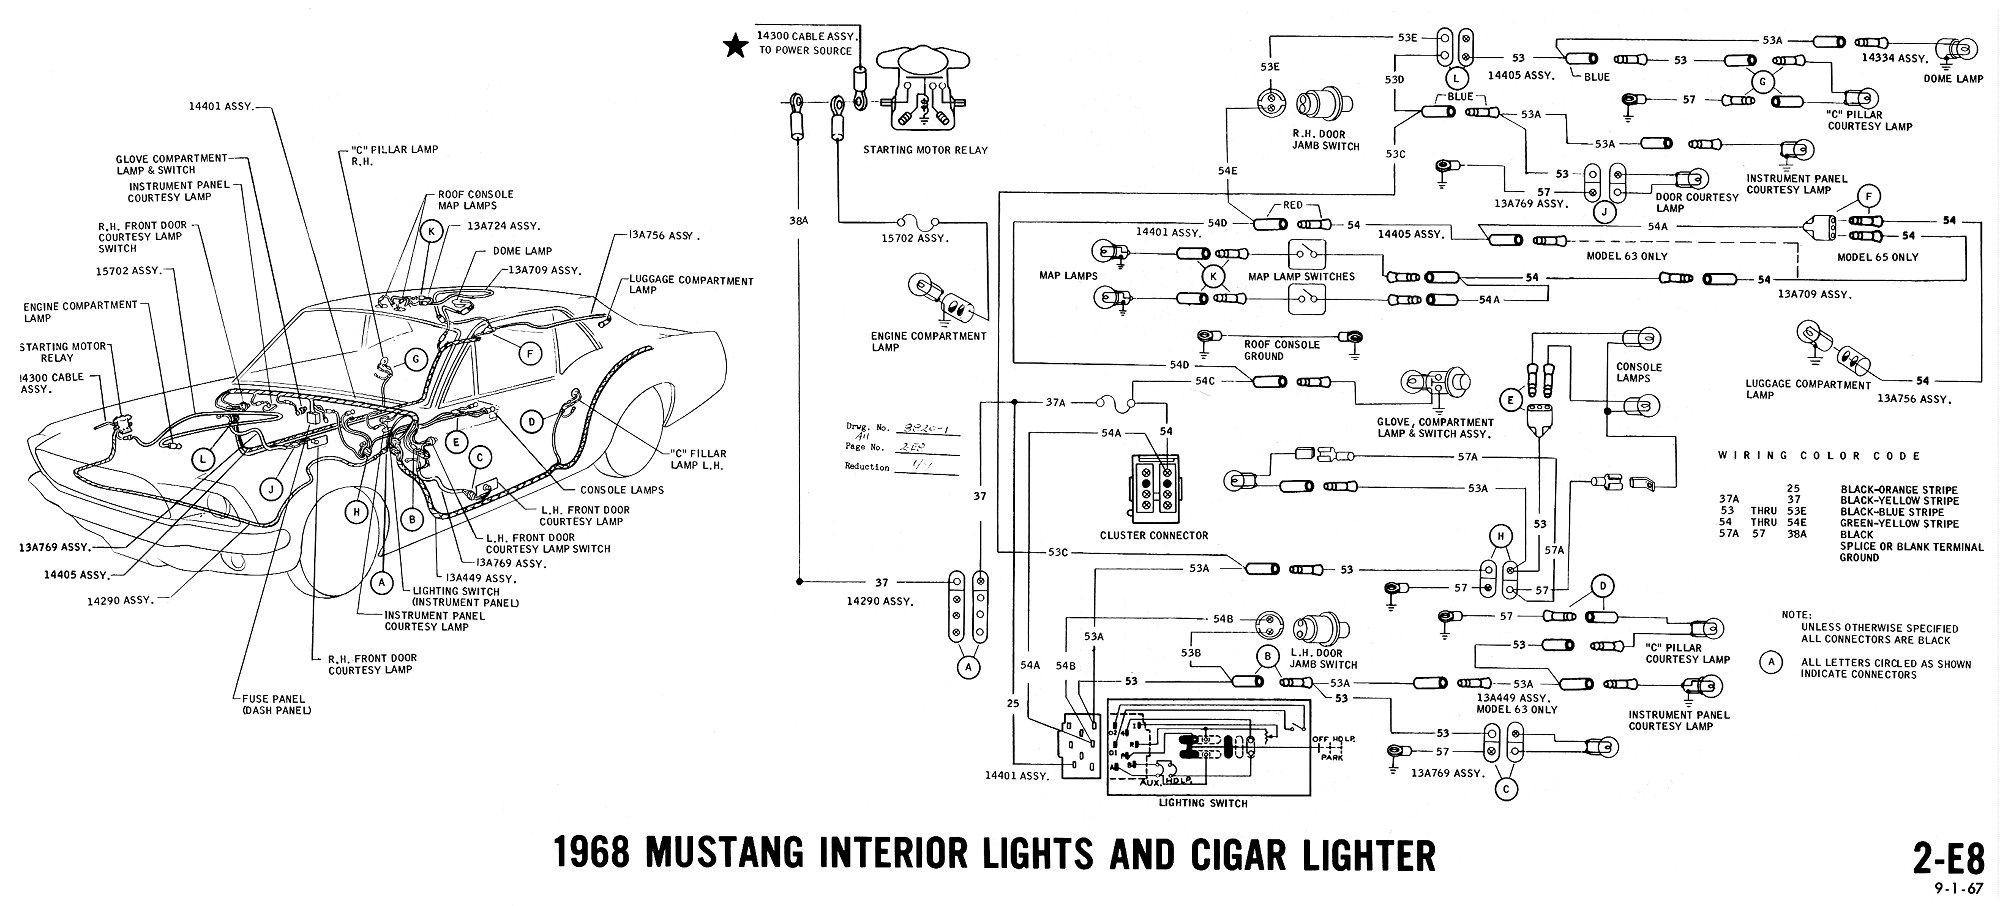 1968 mustang wiring diagrams evolving software cigar lighter interior lights